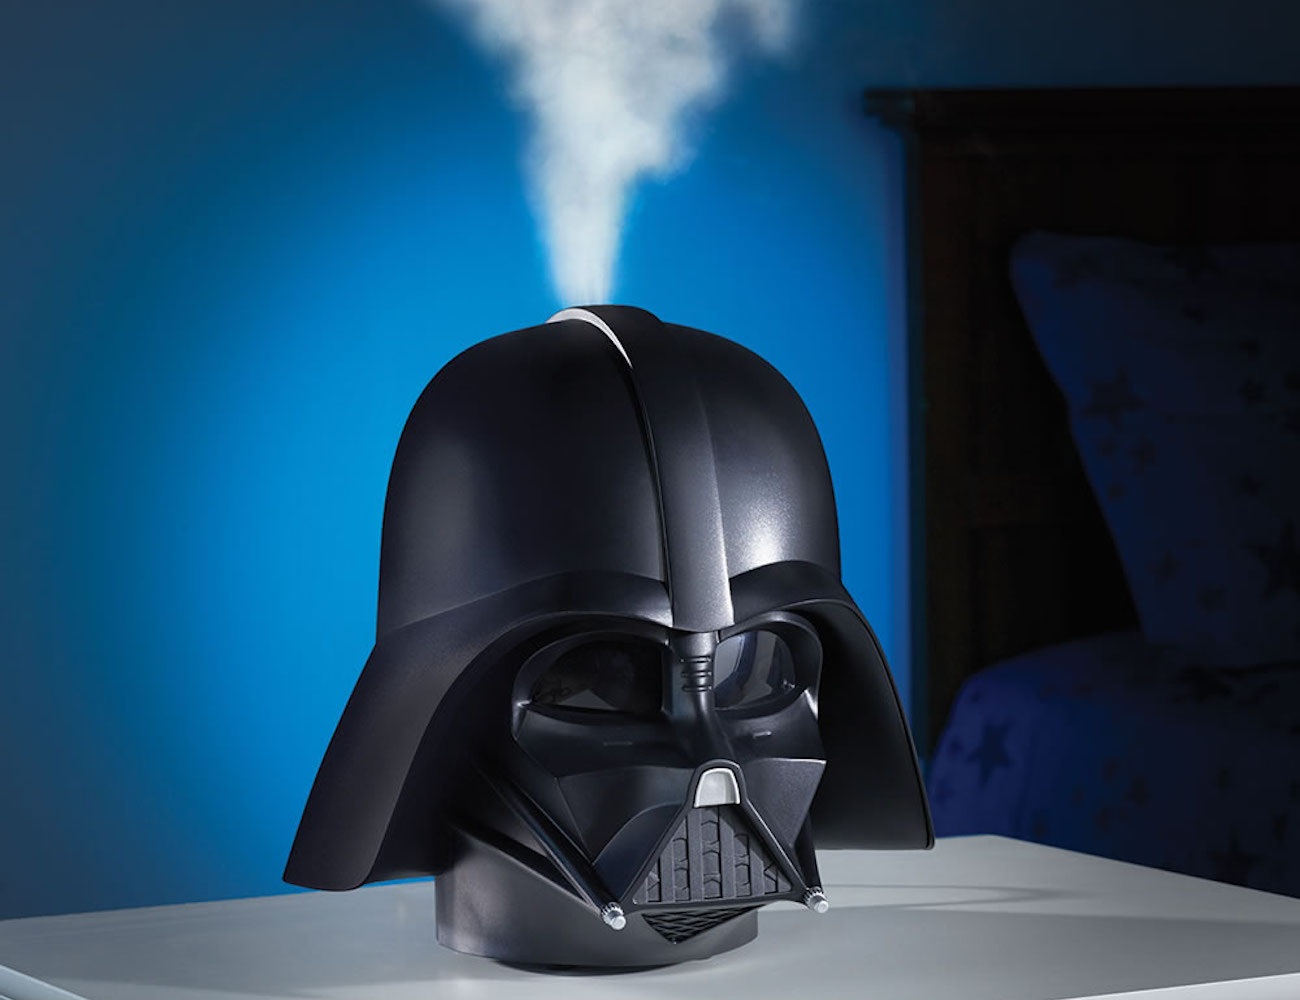 humidifers to combat nasal drip and cure raw throats